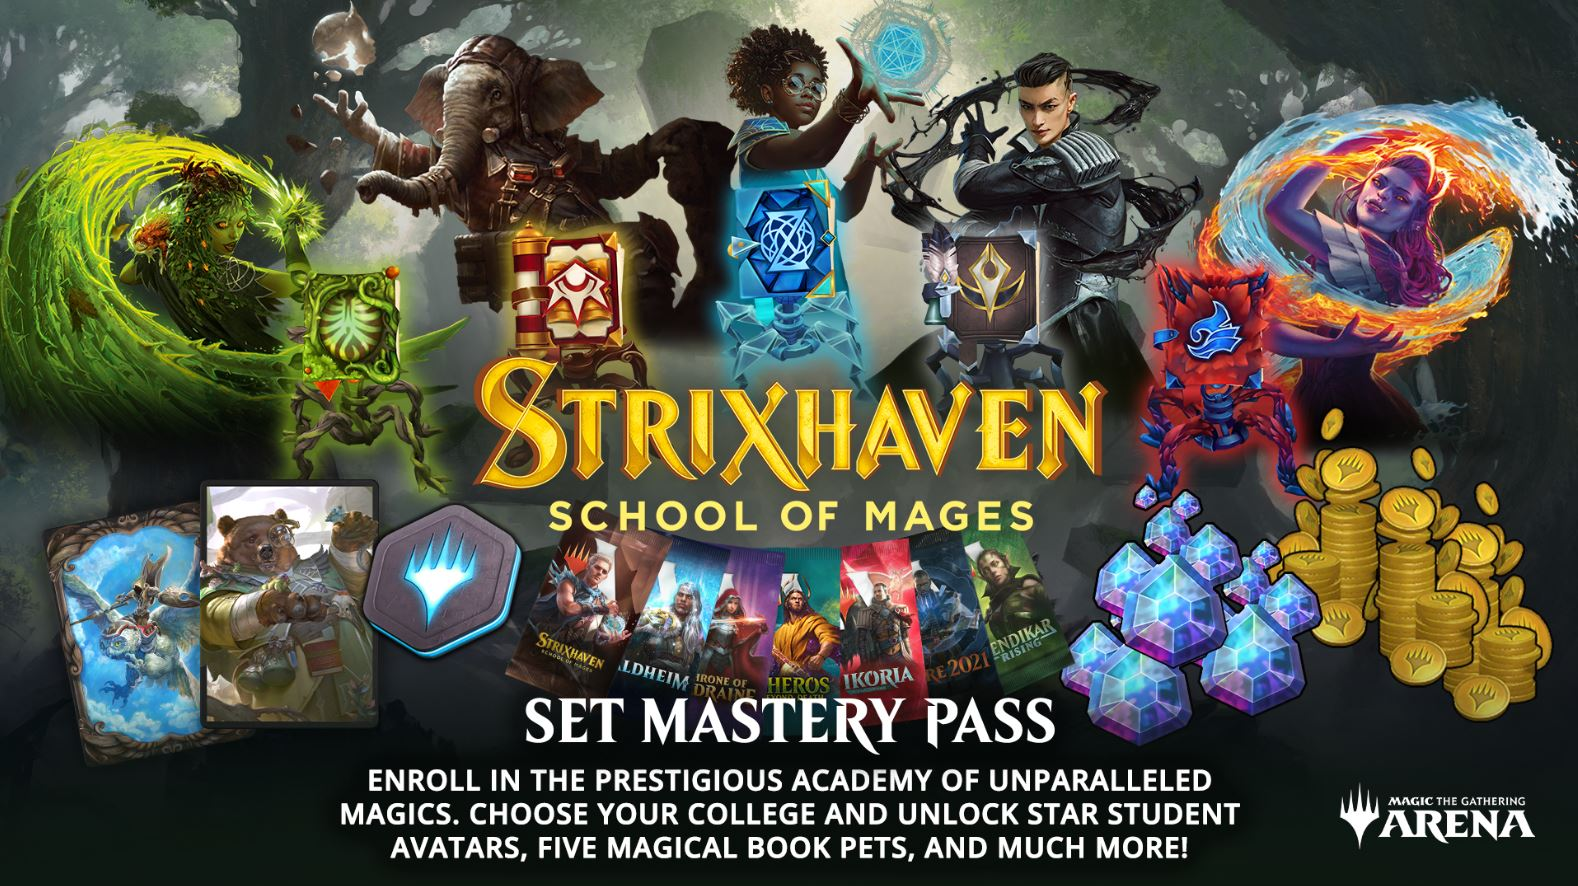 WotC Releases Strixhaven Set Mastery Pass Details For MTG Arena